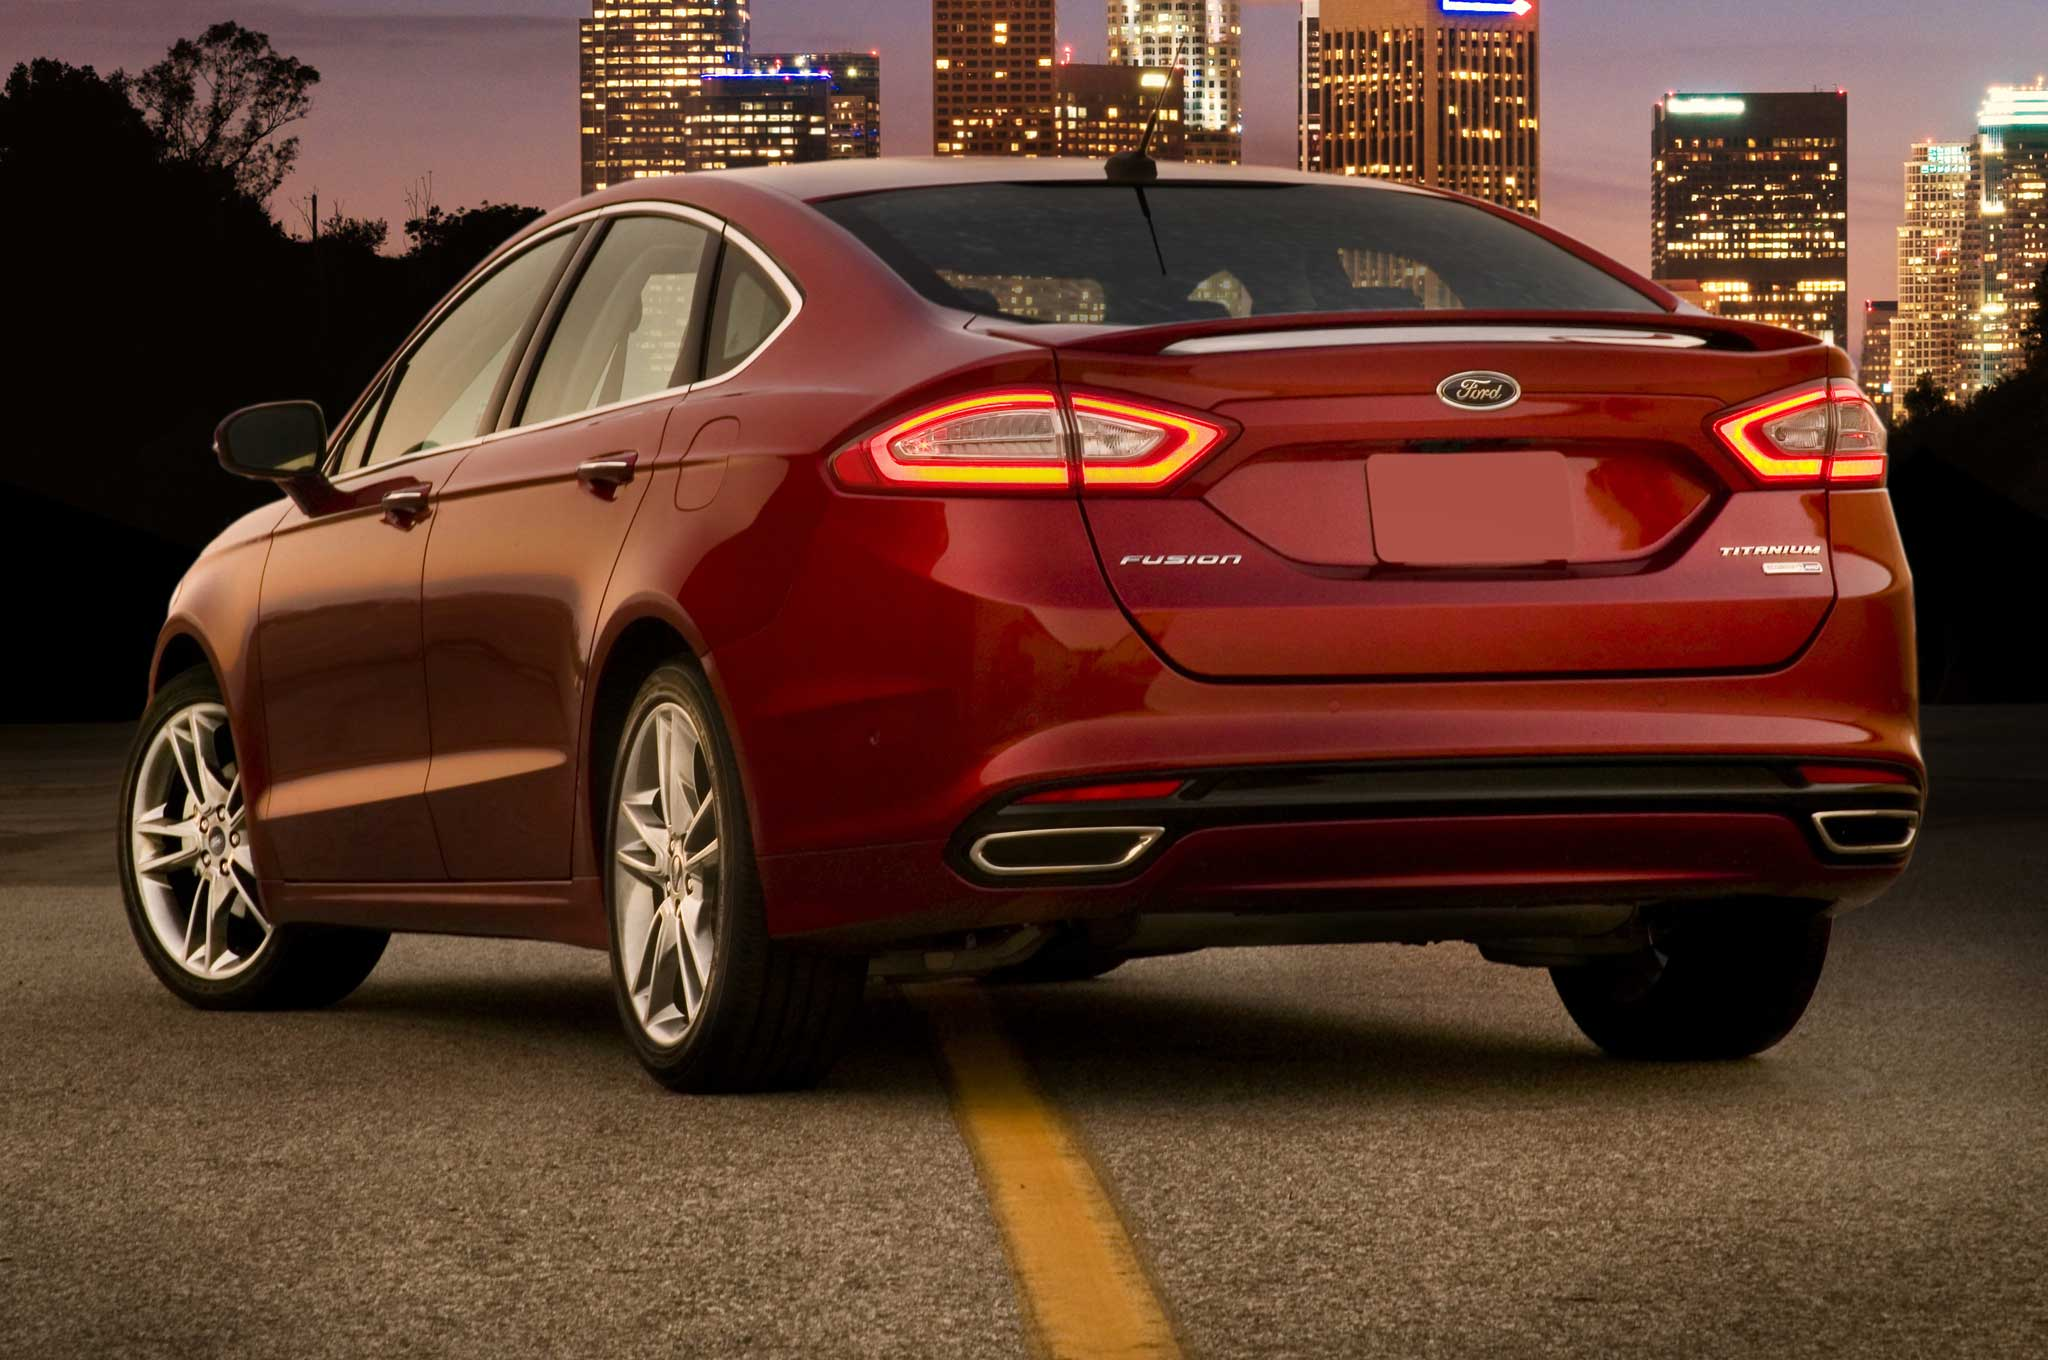 2014 Ford Fusion Gets Rear Seatbelt Airbags Photo Gallery